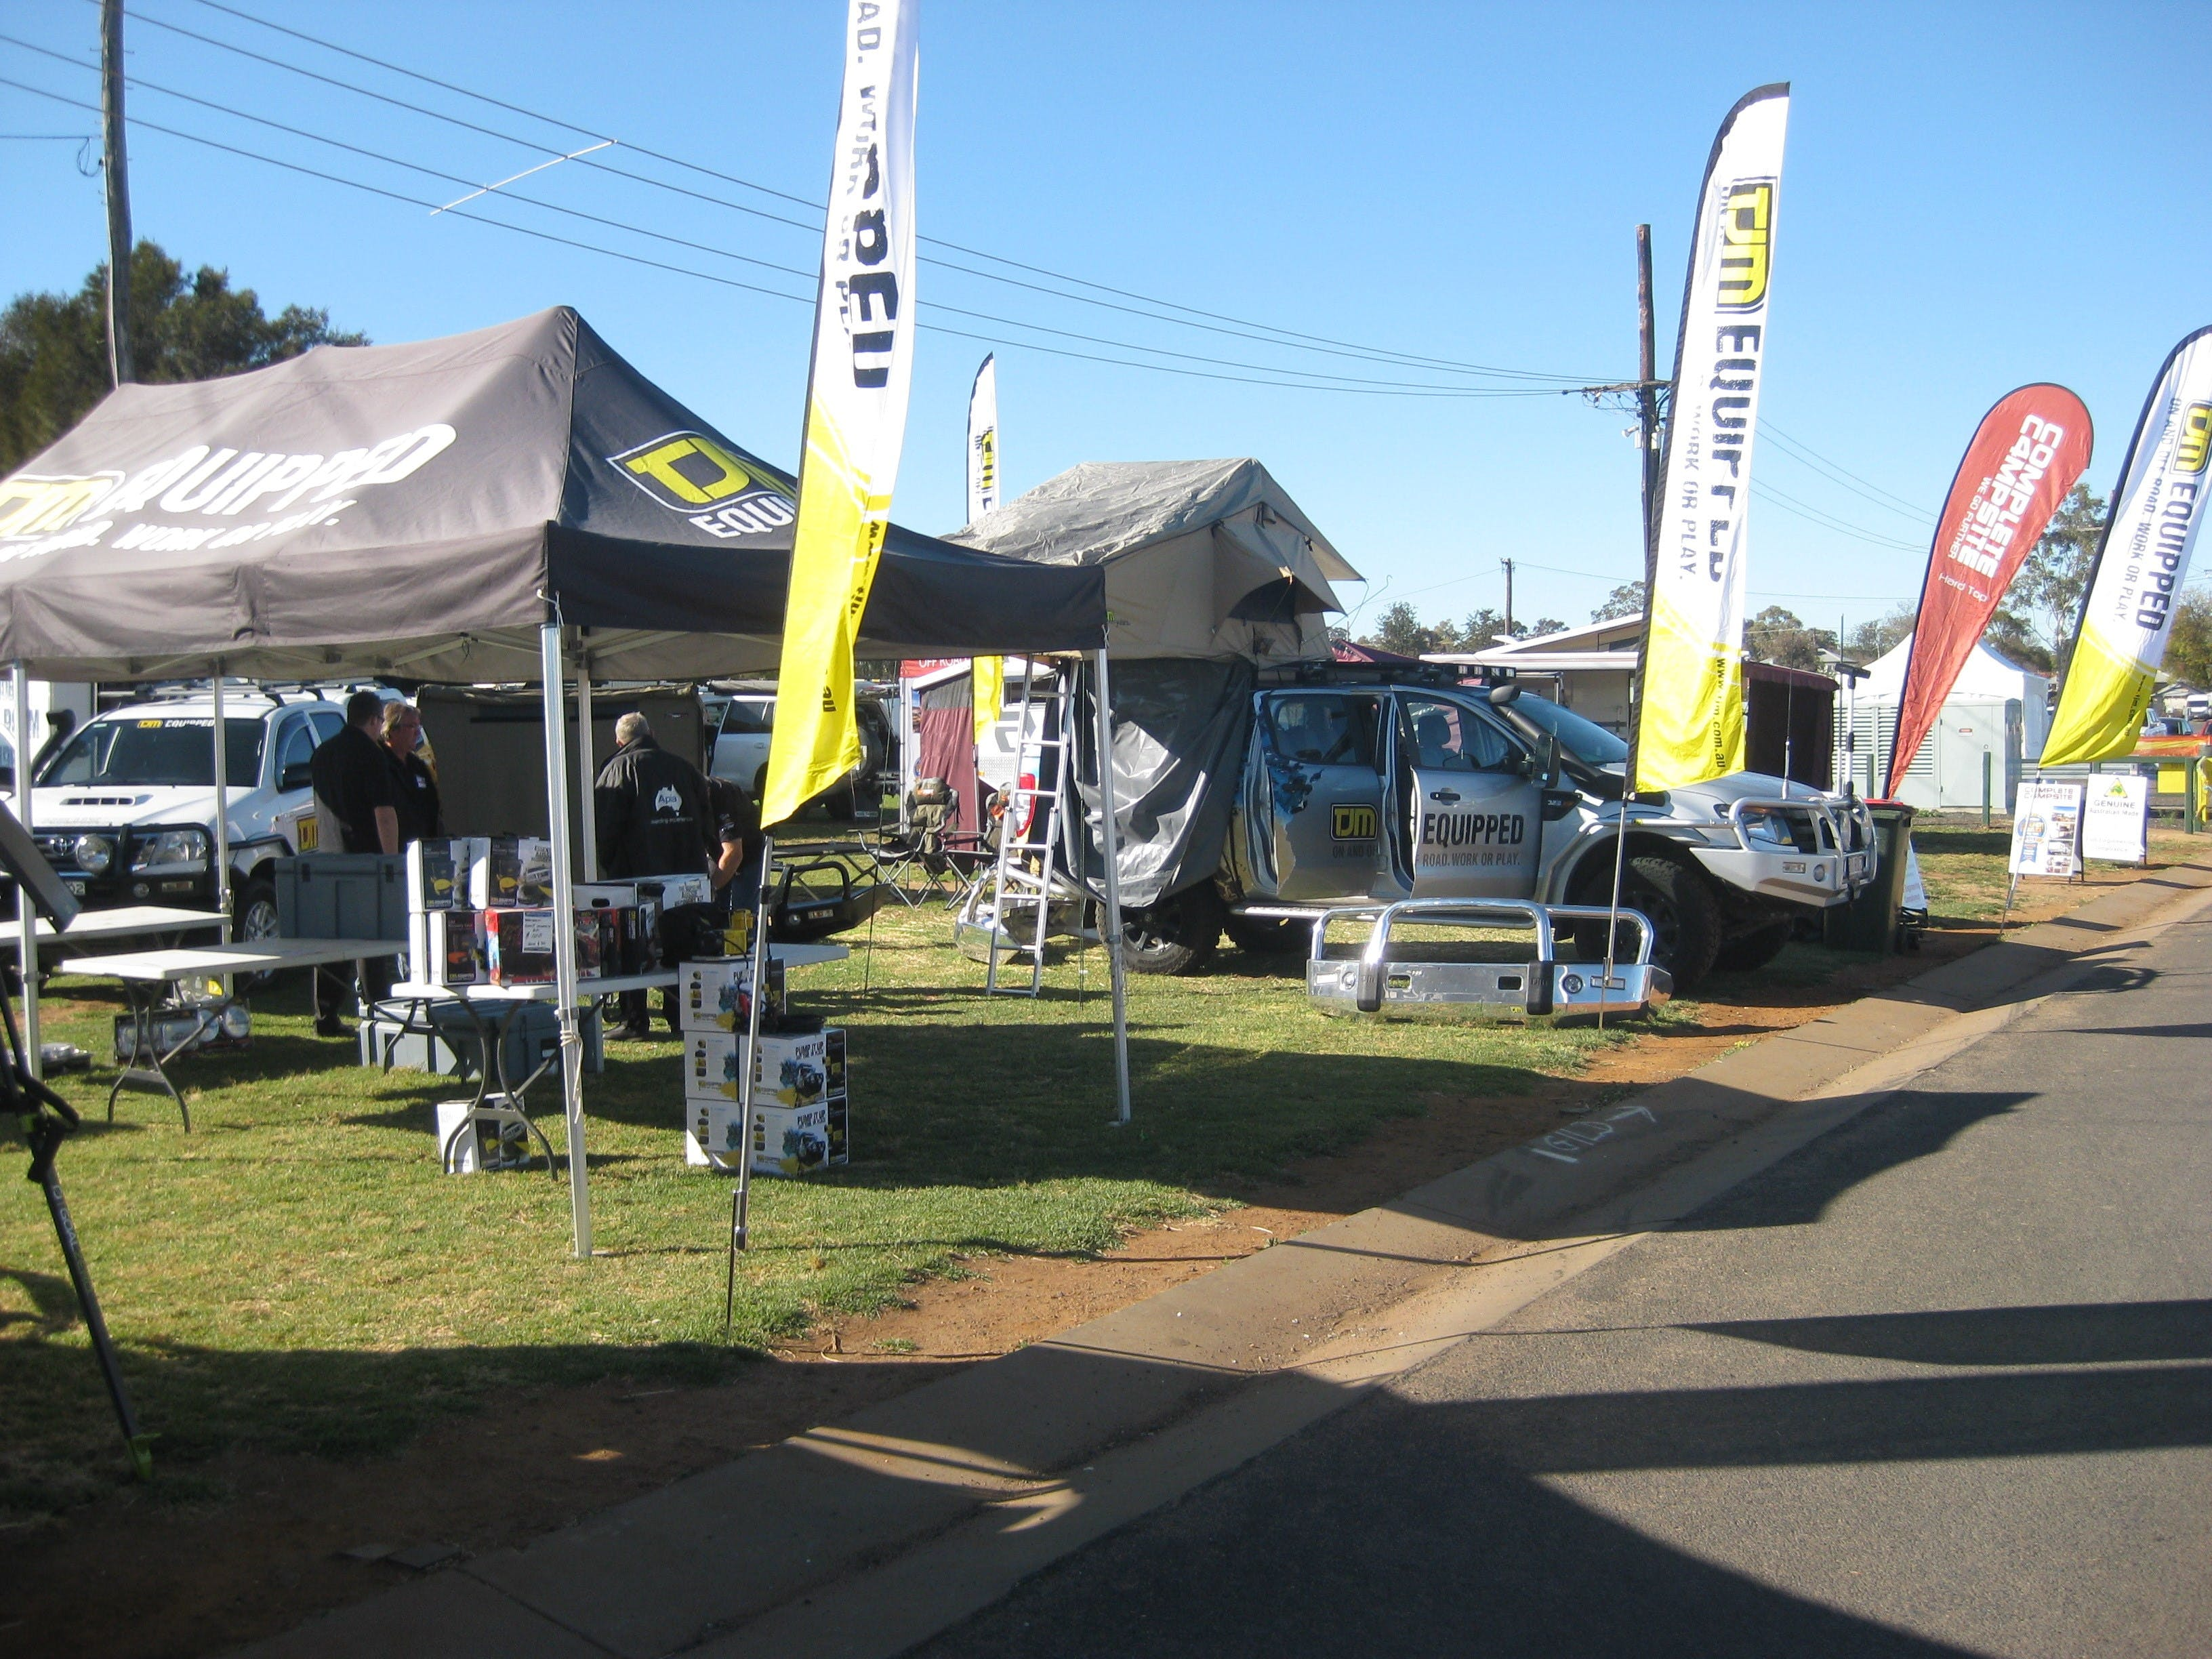 Orana Caravan Camping 4WD Fish and Boat Show - Accommodation Cooktown